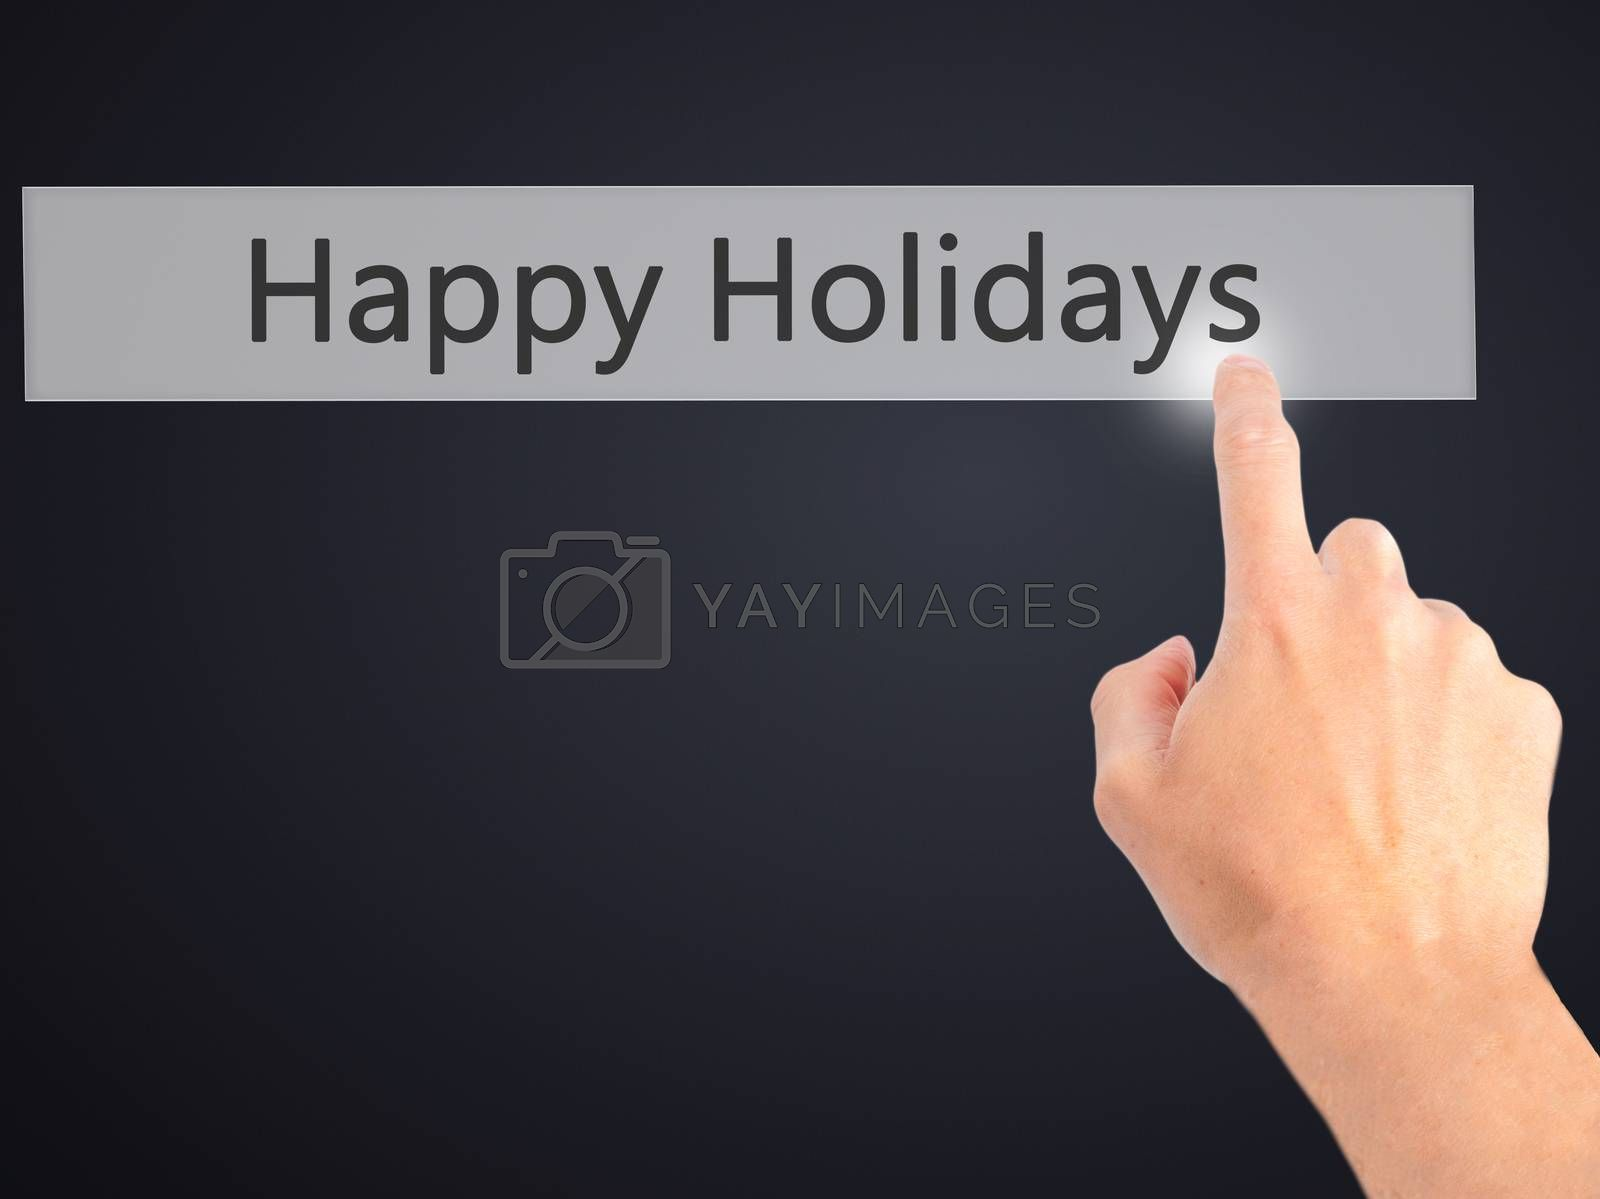 Happy Holidays - Hand pressing a button on blurred background co by netsay.net